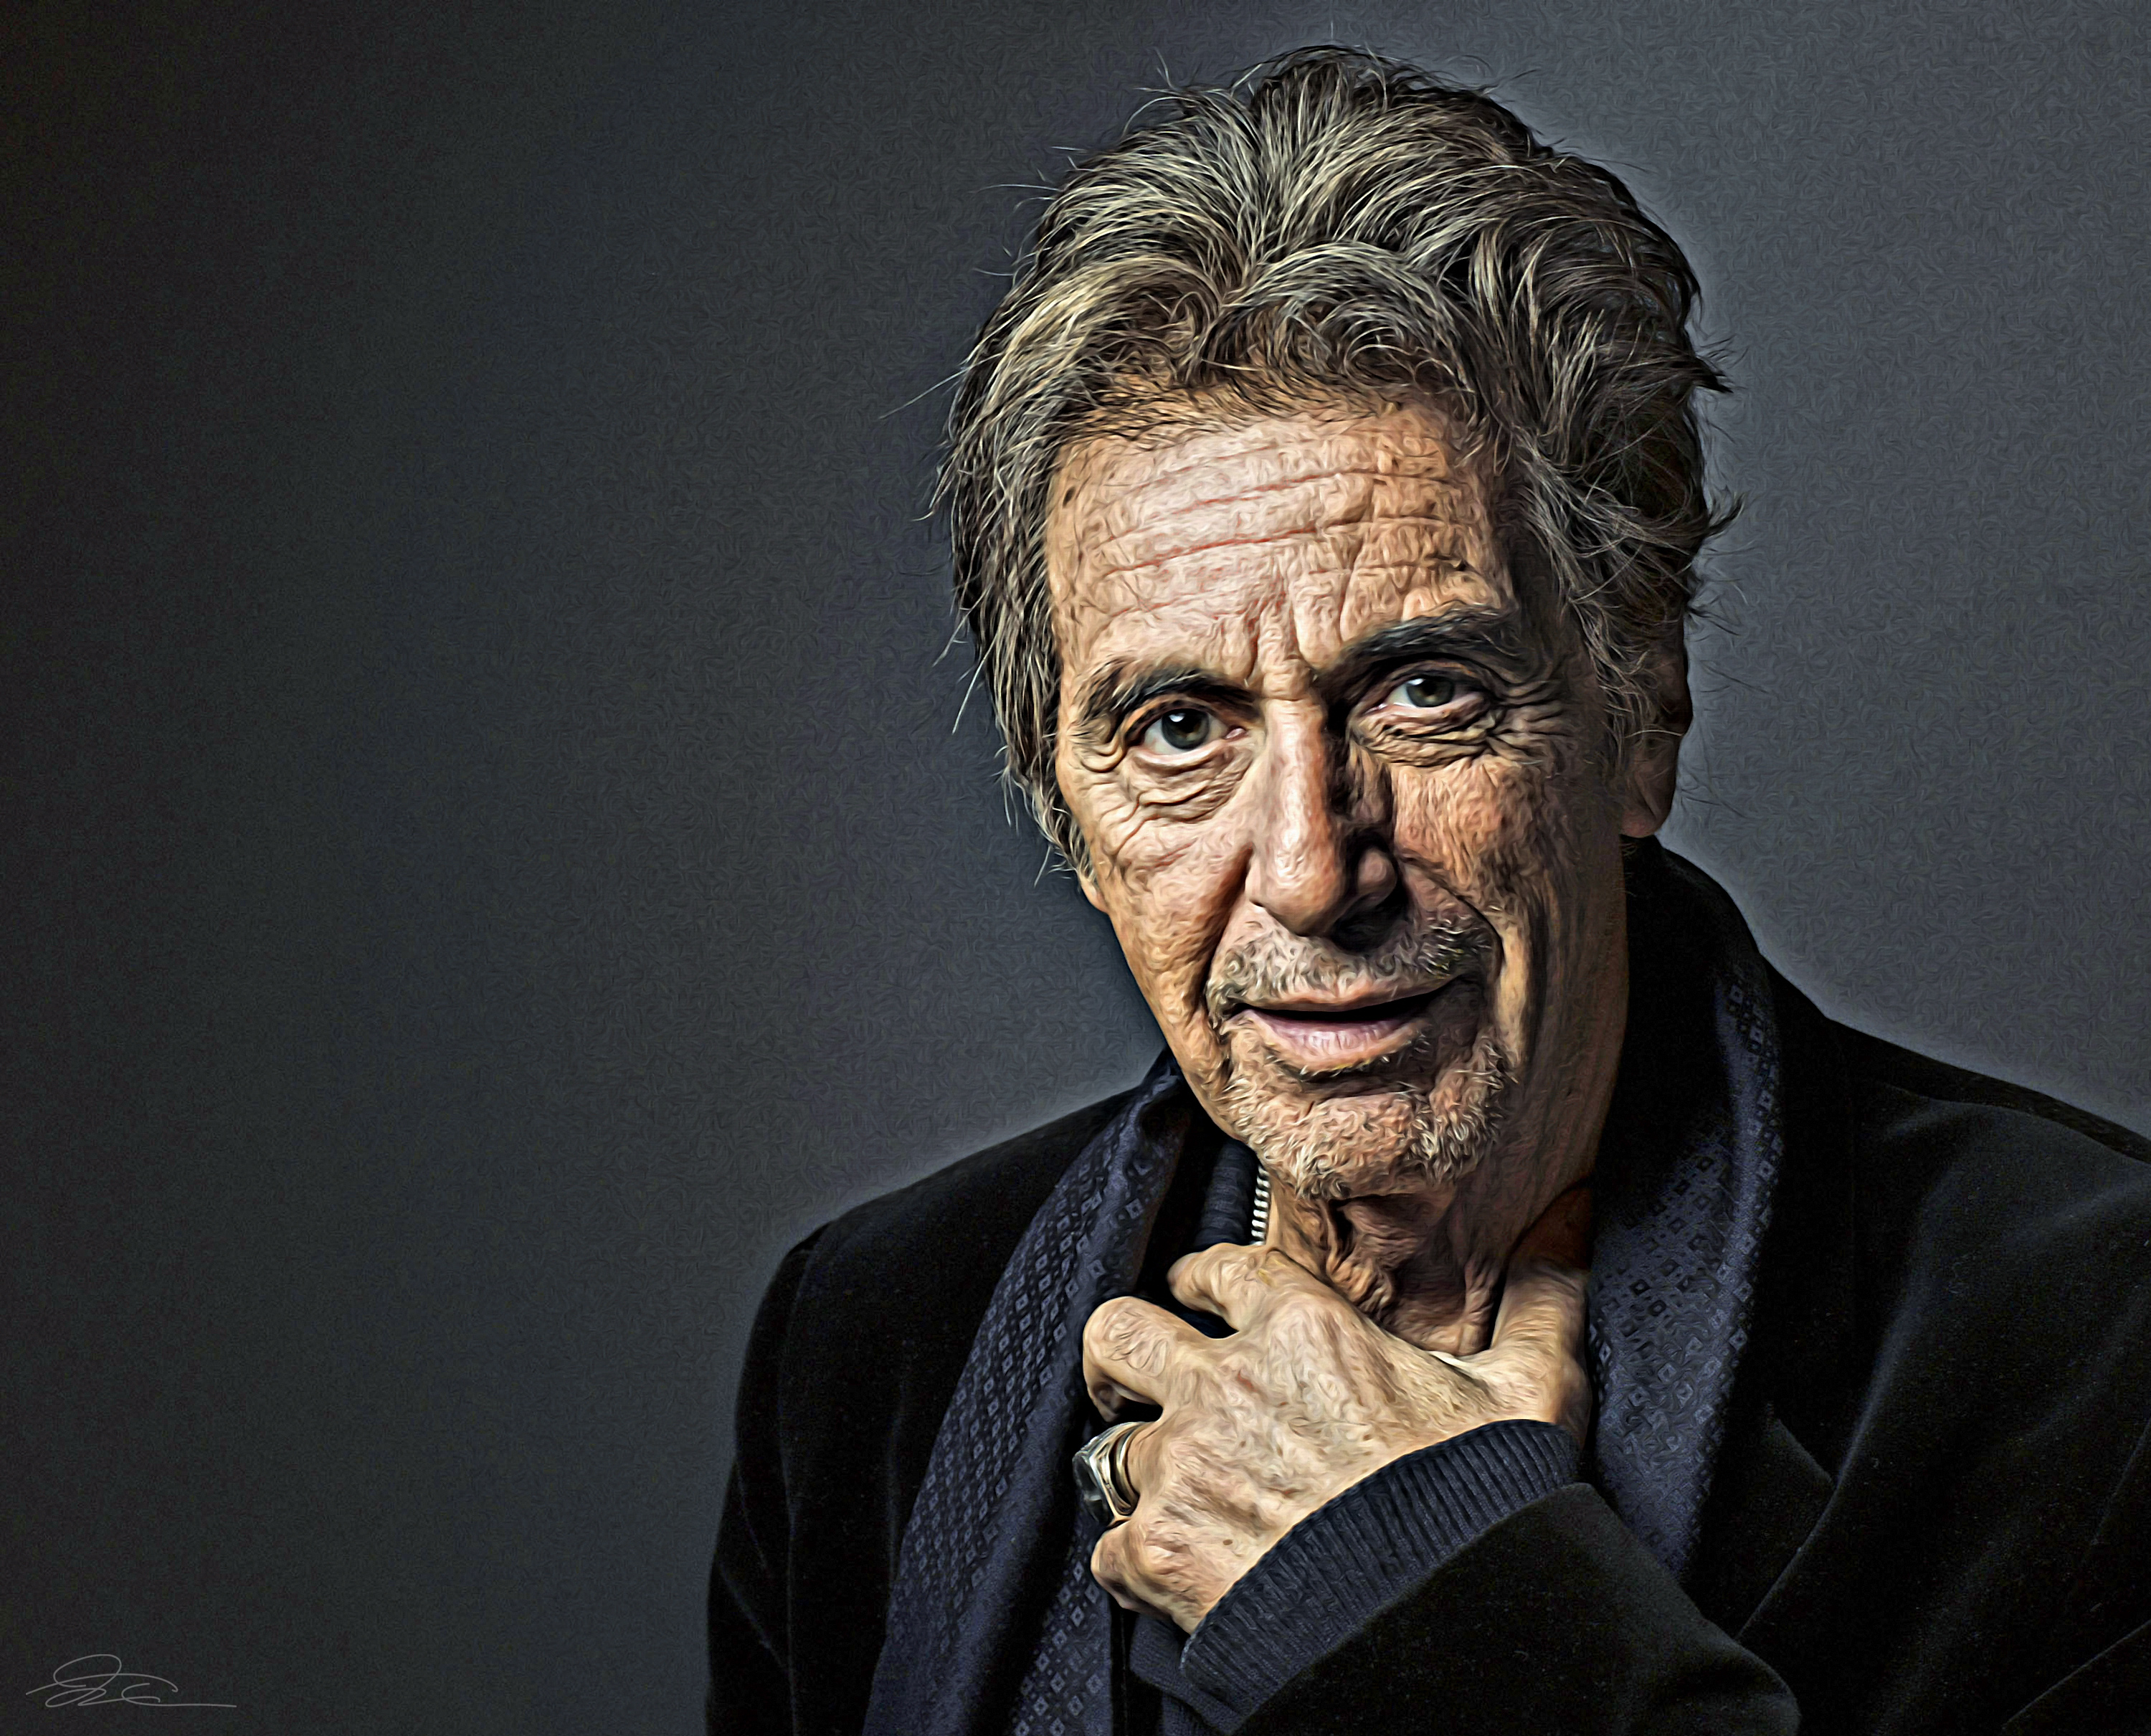 Al Pacino Wallpapers High Resolution and Quality Download Al Pacino